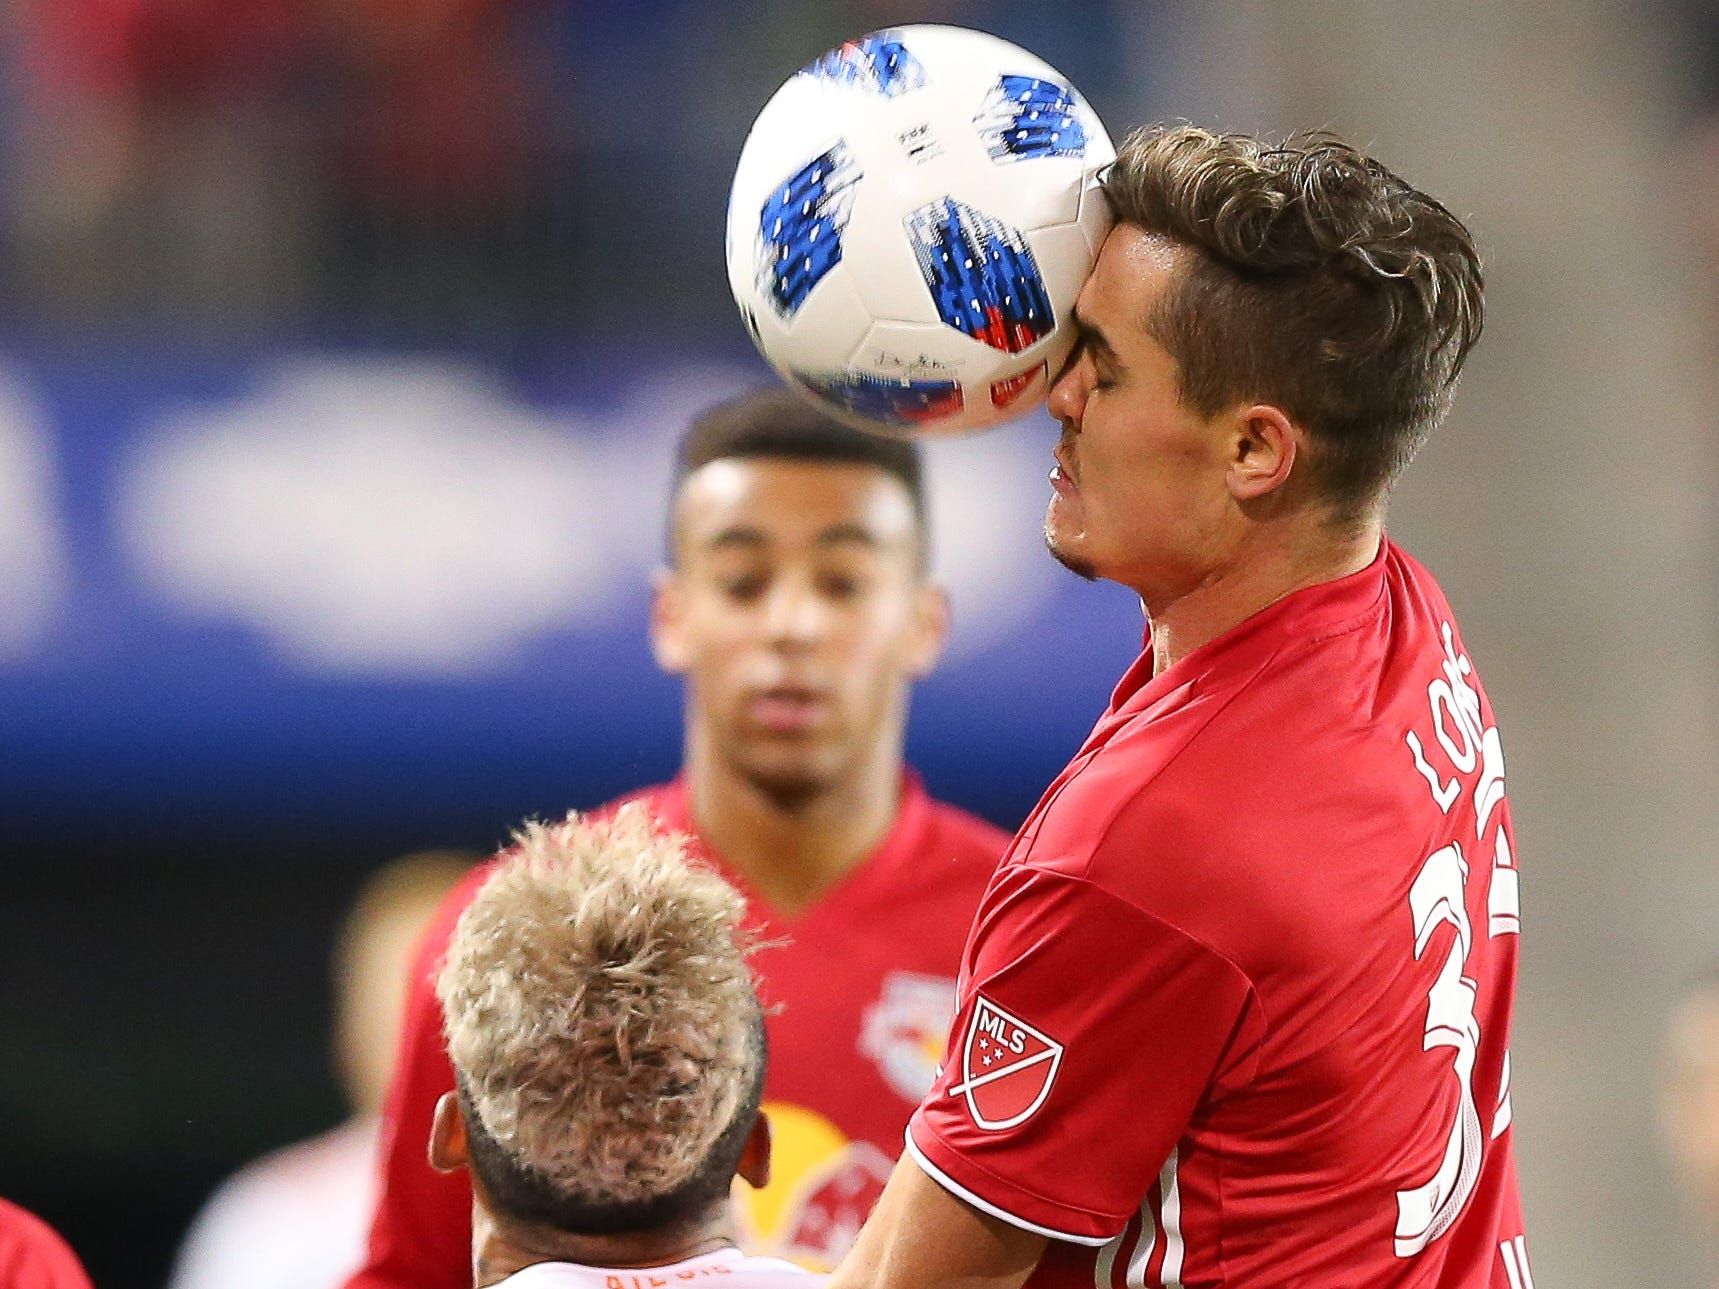 New York Red Bulls midfielder Aaron Long (33) heads the ball over Atlanta United forward Josef Martinez (7) during the first half of the second leg of the MLS Eastern Conference Championship at Red Bull Arena.